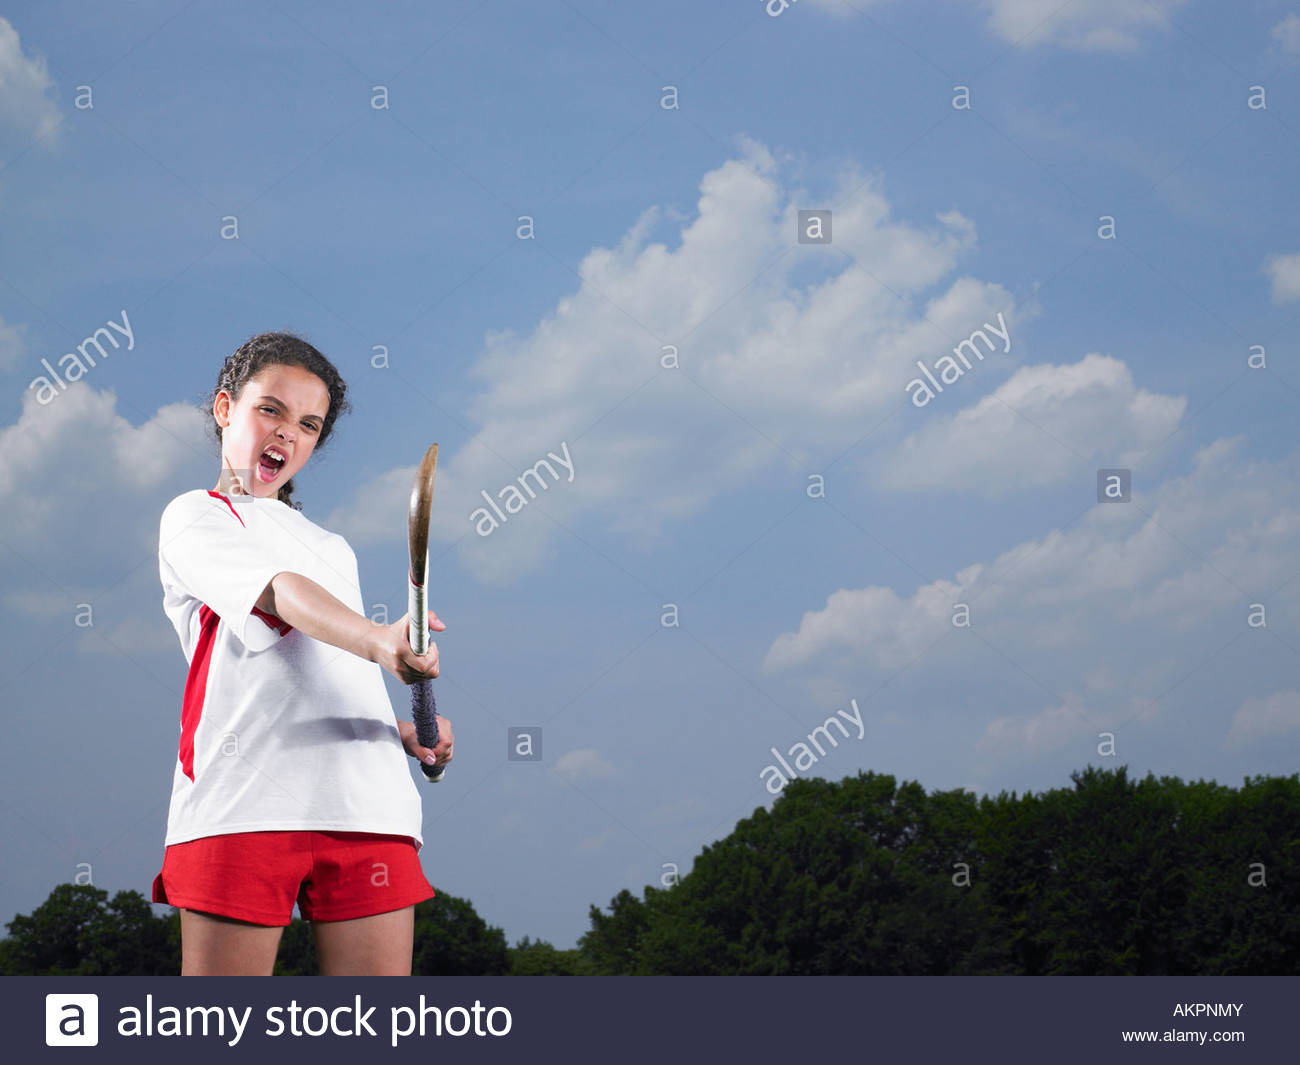 Portrait of a hockey player - Stock Image